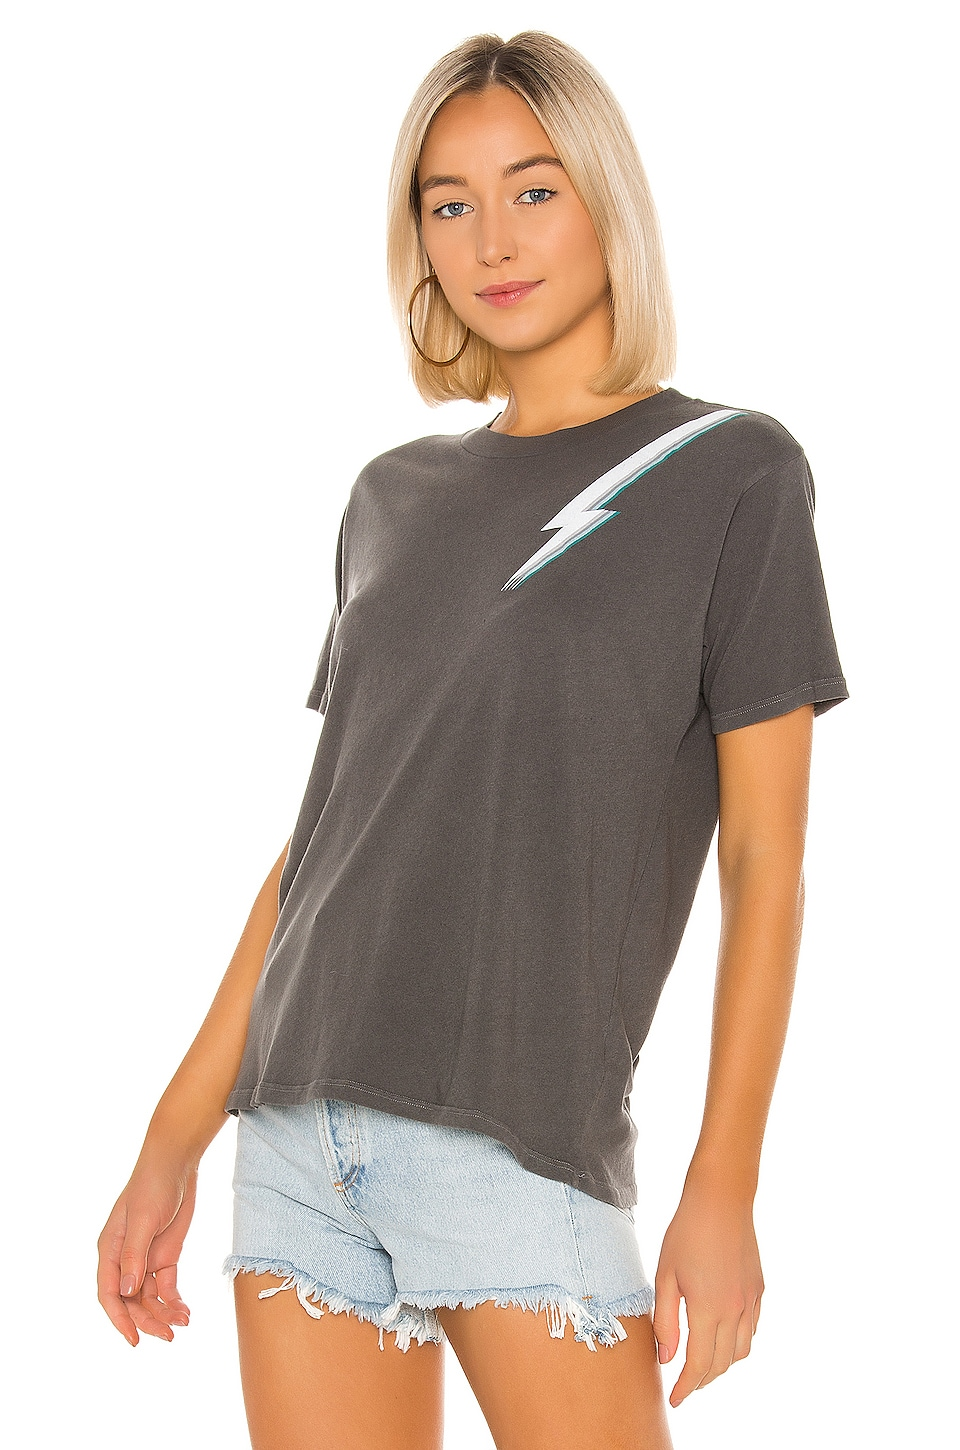 Lightning Bolt Boyfriend Tee, view 2, click to view large image.